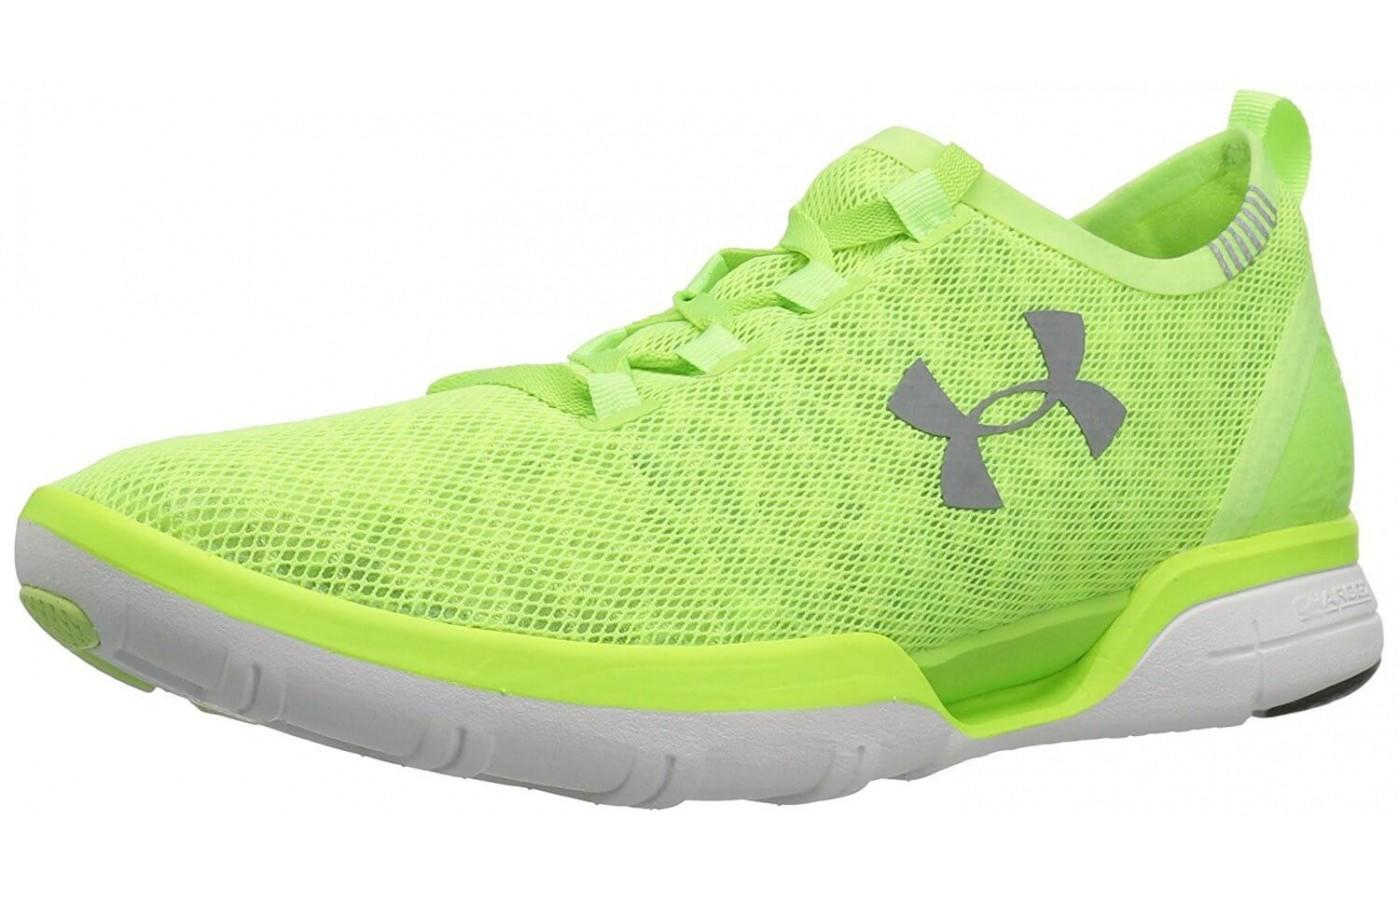 Under Armour Charged Coolswitch in neon colorway